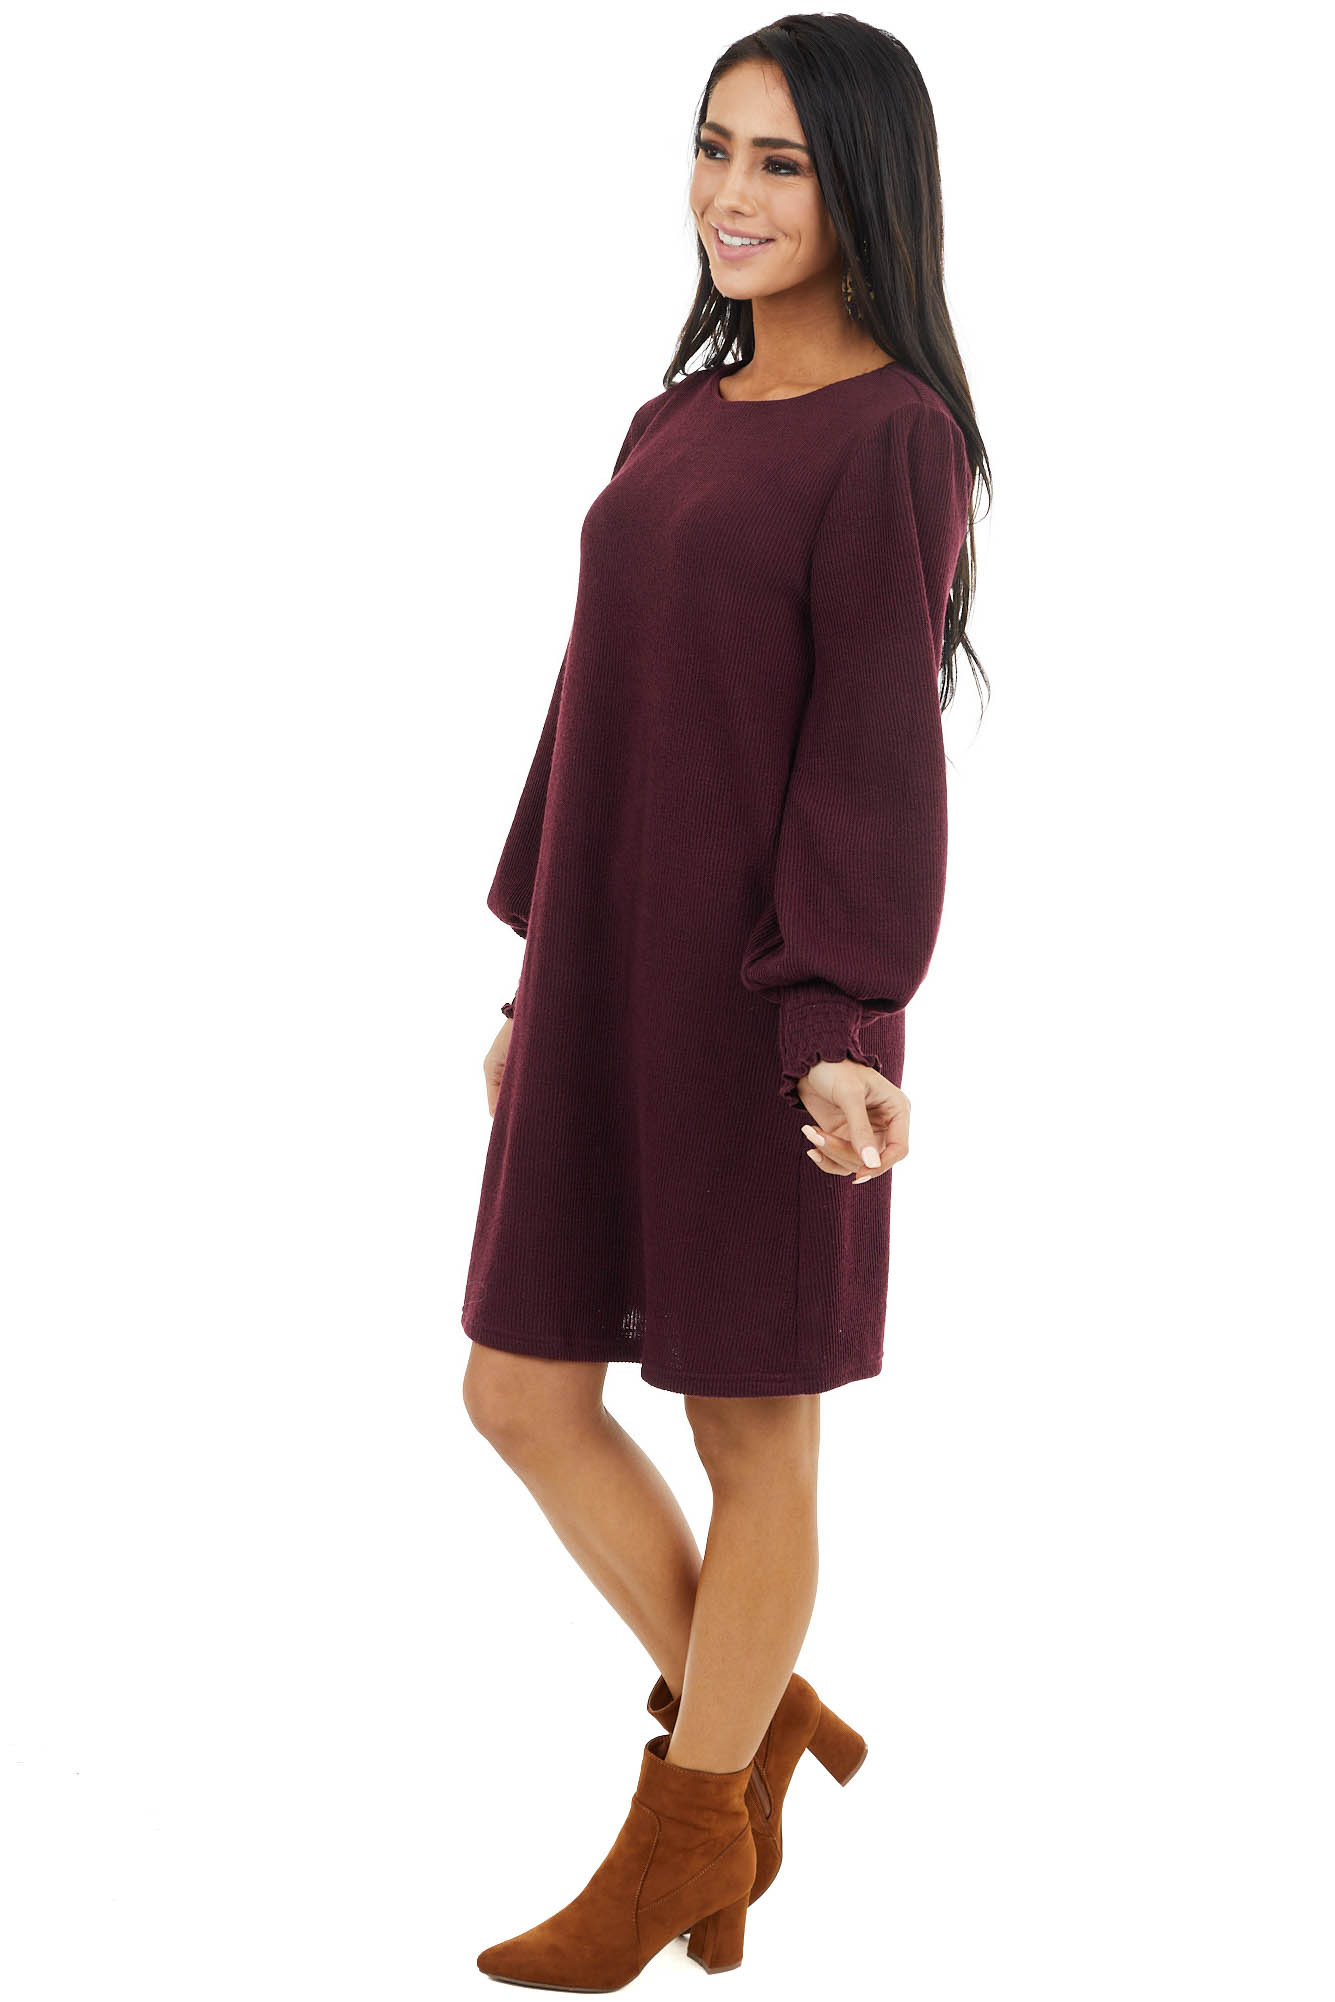 Wine Ribbed Knit Dress with Smocked Cuffs and Keyhole Back